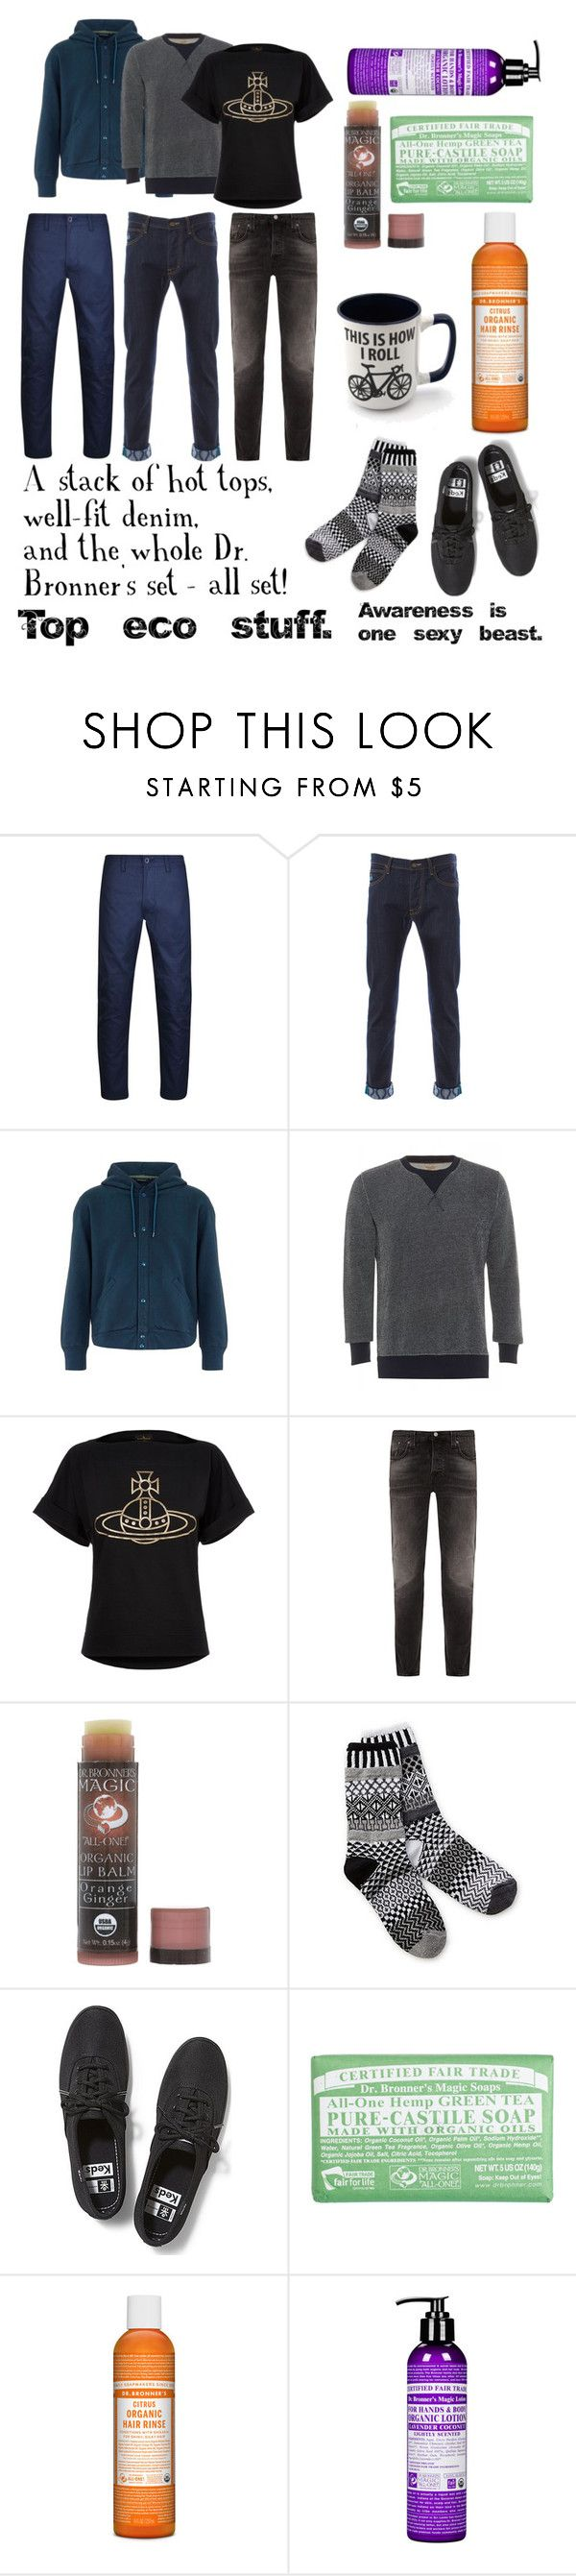 """(ECO) care, be aware, ensnare"" by yggdrasill ❤ liked on Polyvore featuring Maharishi, Paul Smith, Nudie Jeans Co., Dr. Bronner's, Sol Mate Socks, Keds, men's fashion and menswear"